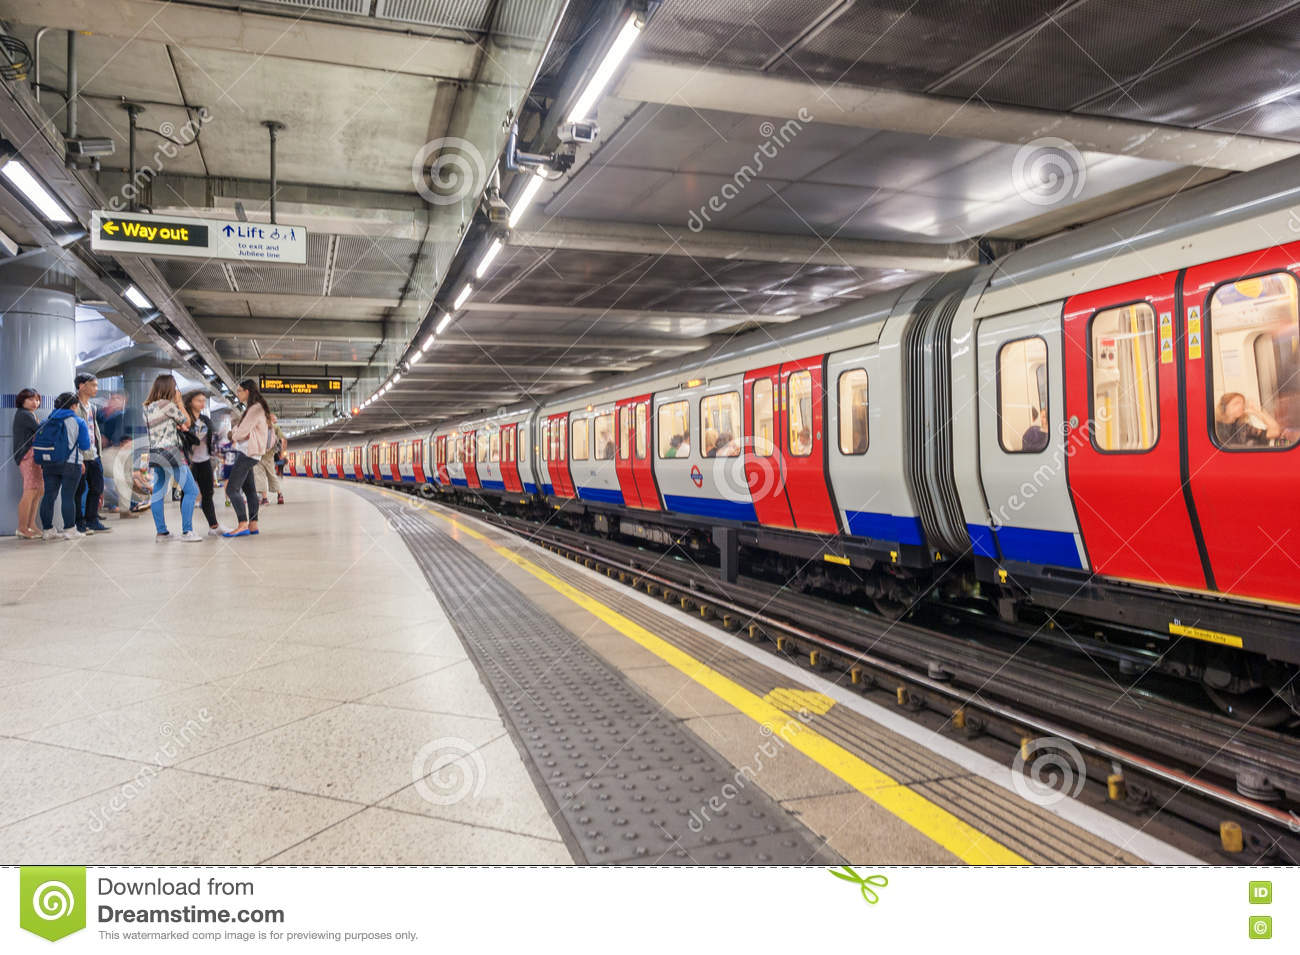 LONDON, ENGLAND - AUGUST 18, 2016: Westminster Underground Station in London, England. Blurry Train because of Long Exposure.